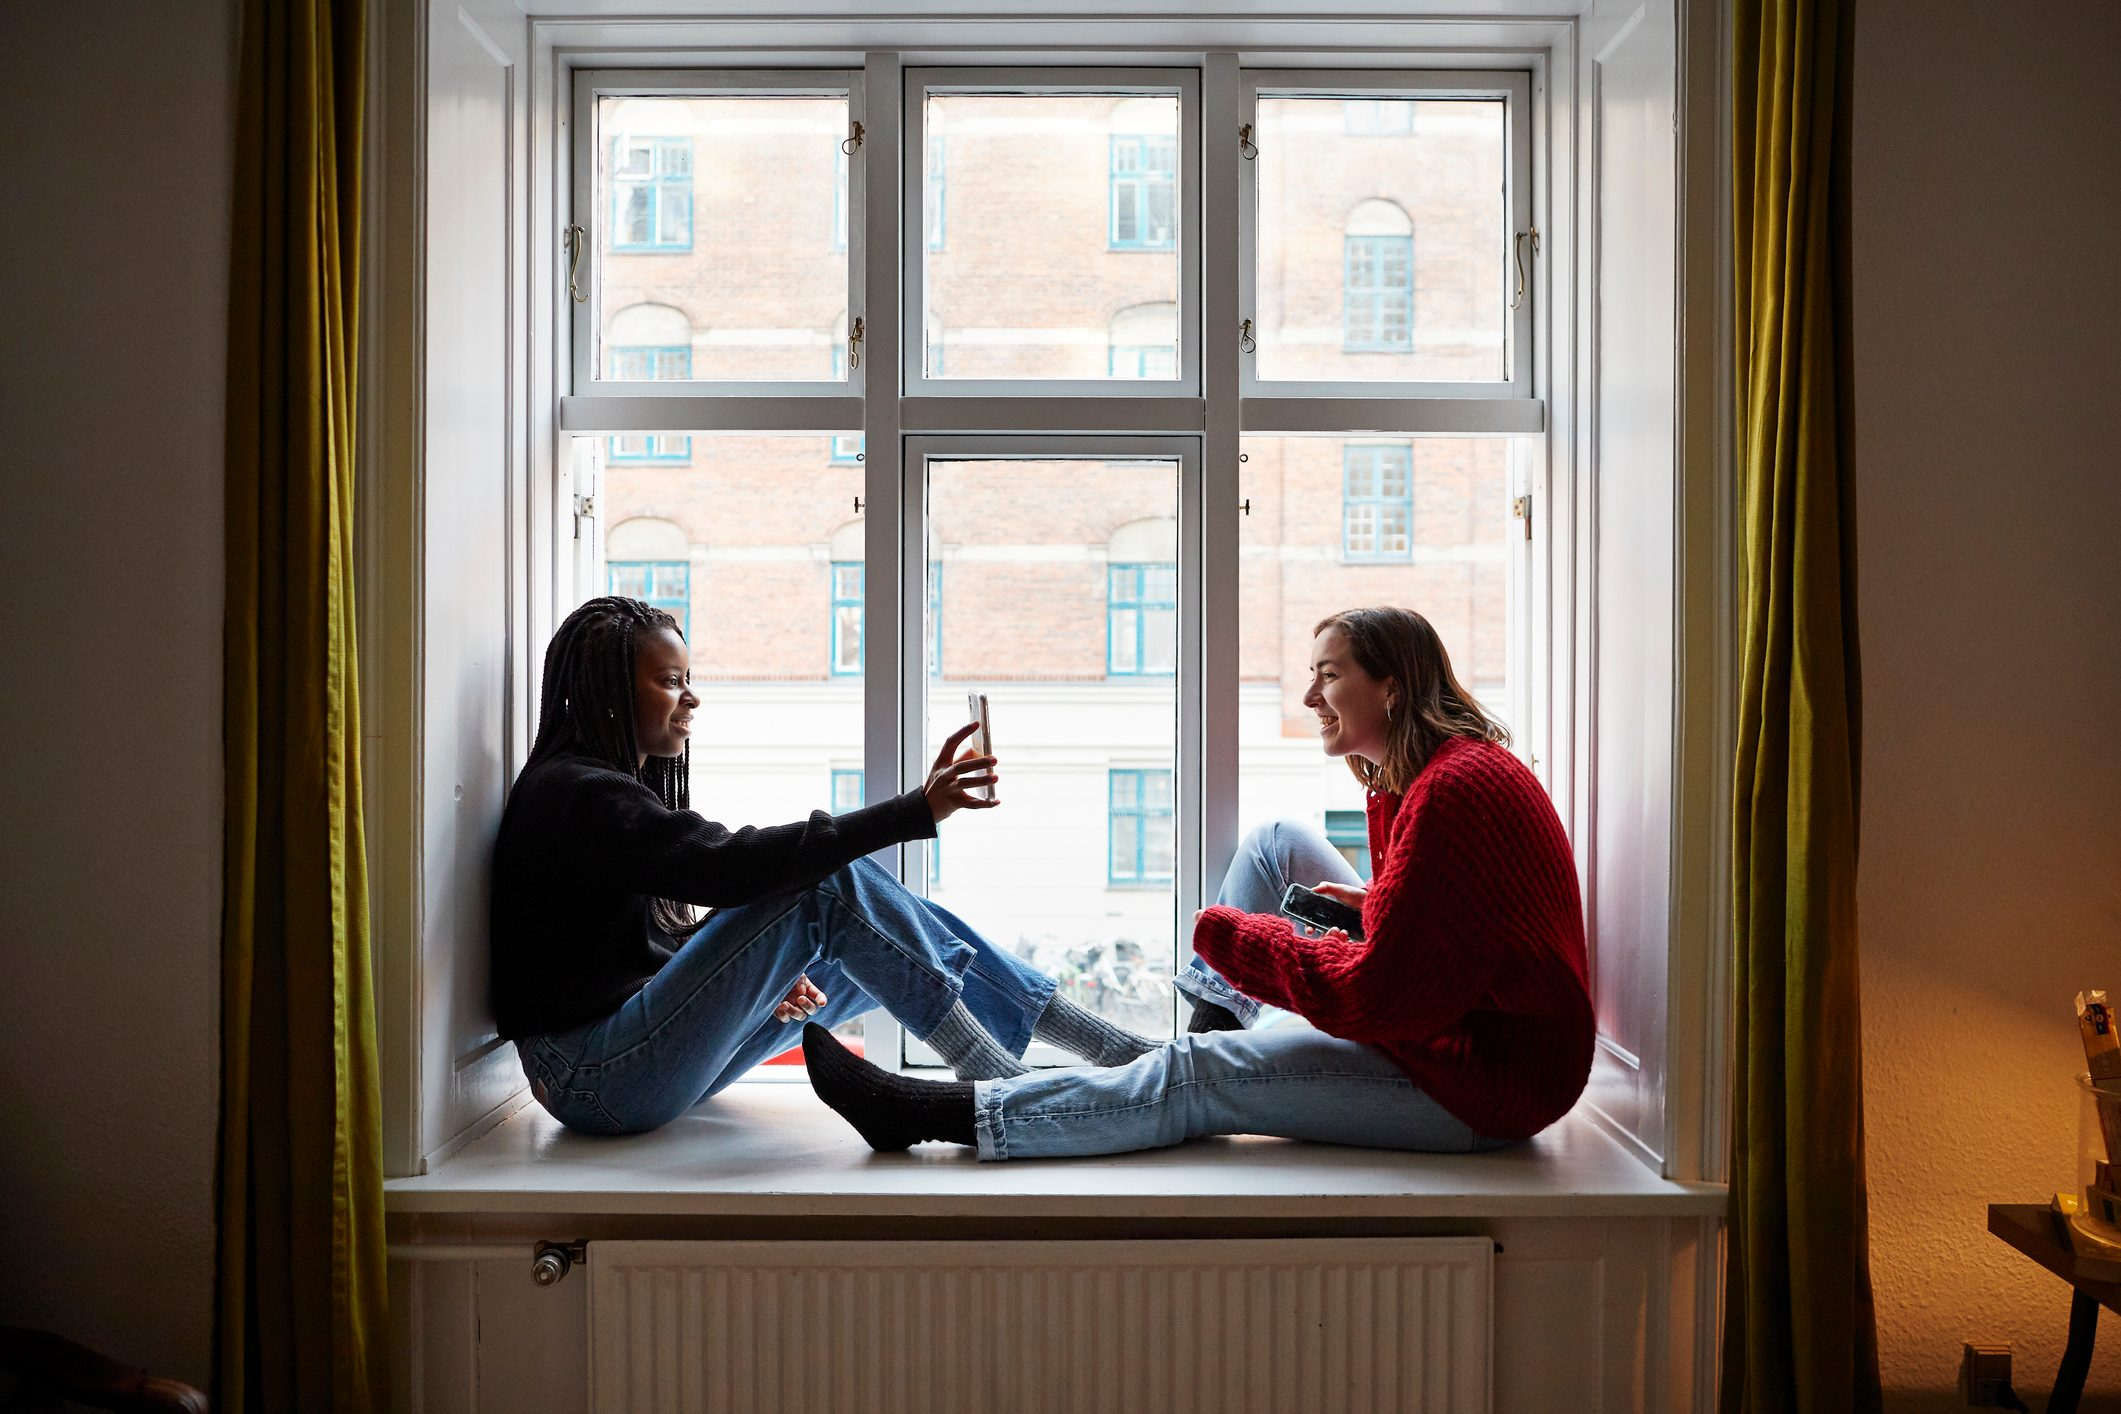 Young female roommates using smart phones at apartment window